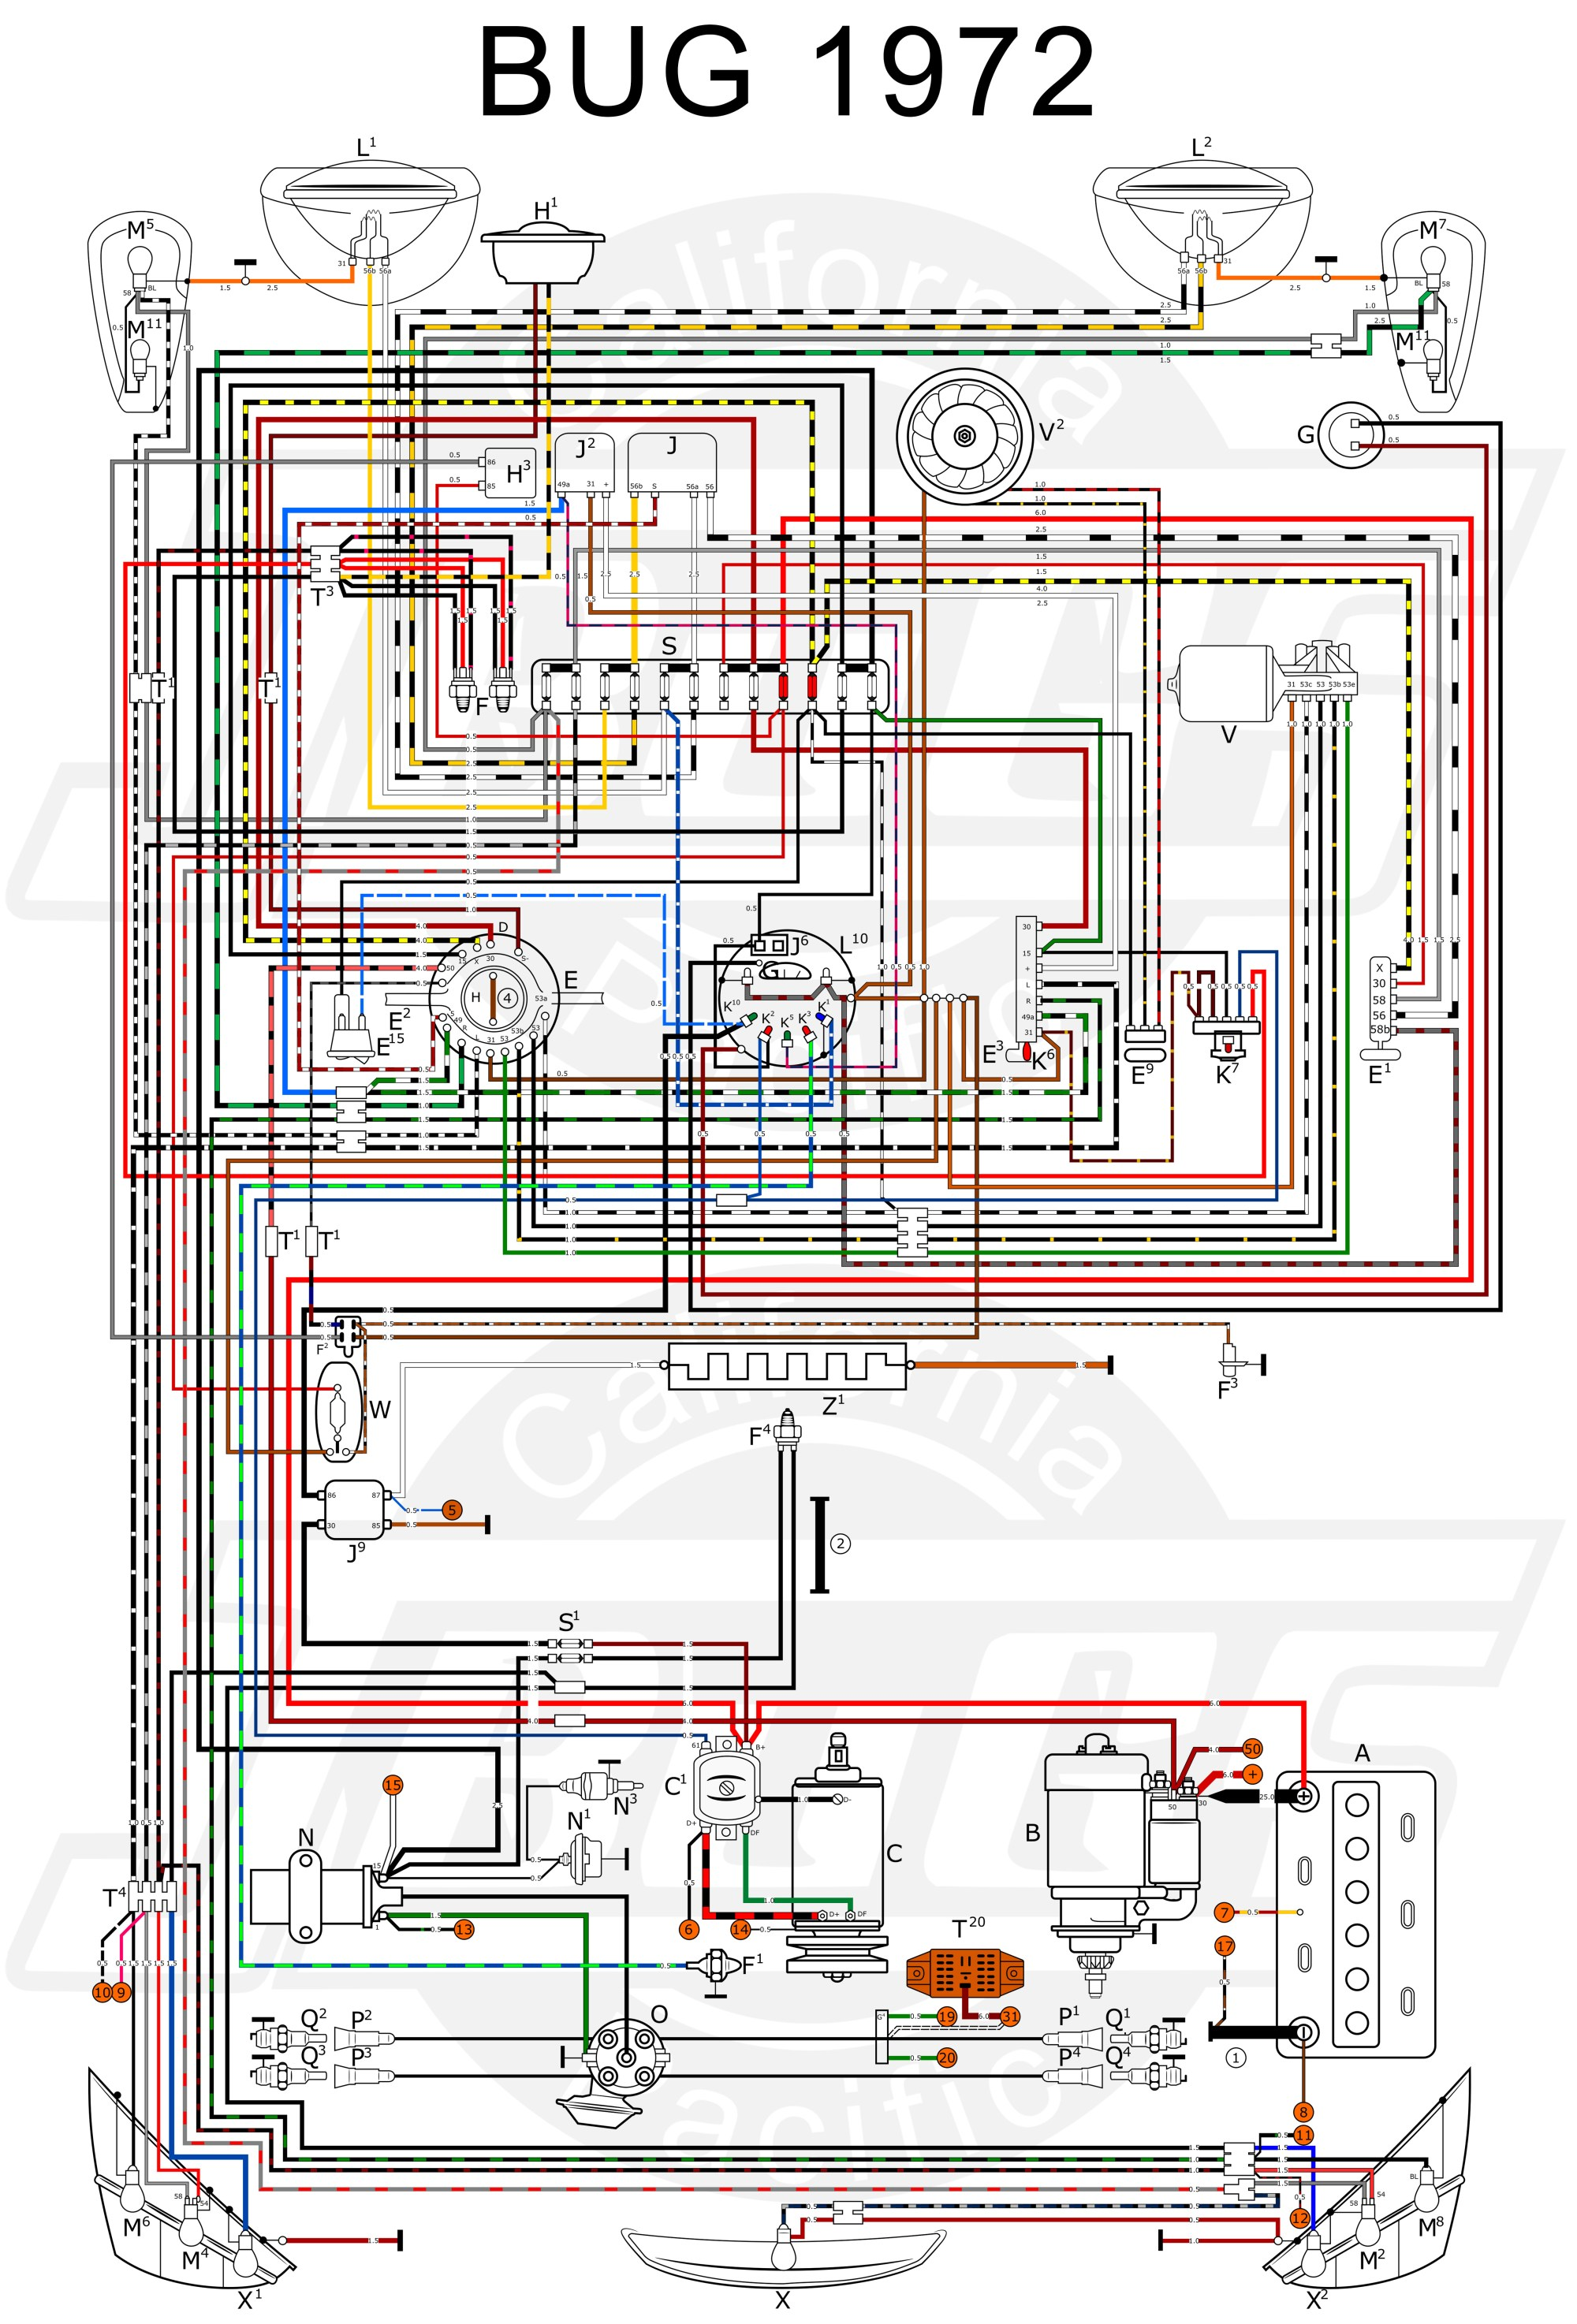 hight resolution of 1967 vw bug fuse box wiring library 1971 vw bug ignition switch wiring wiring diagram fuse